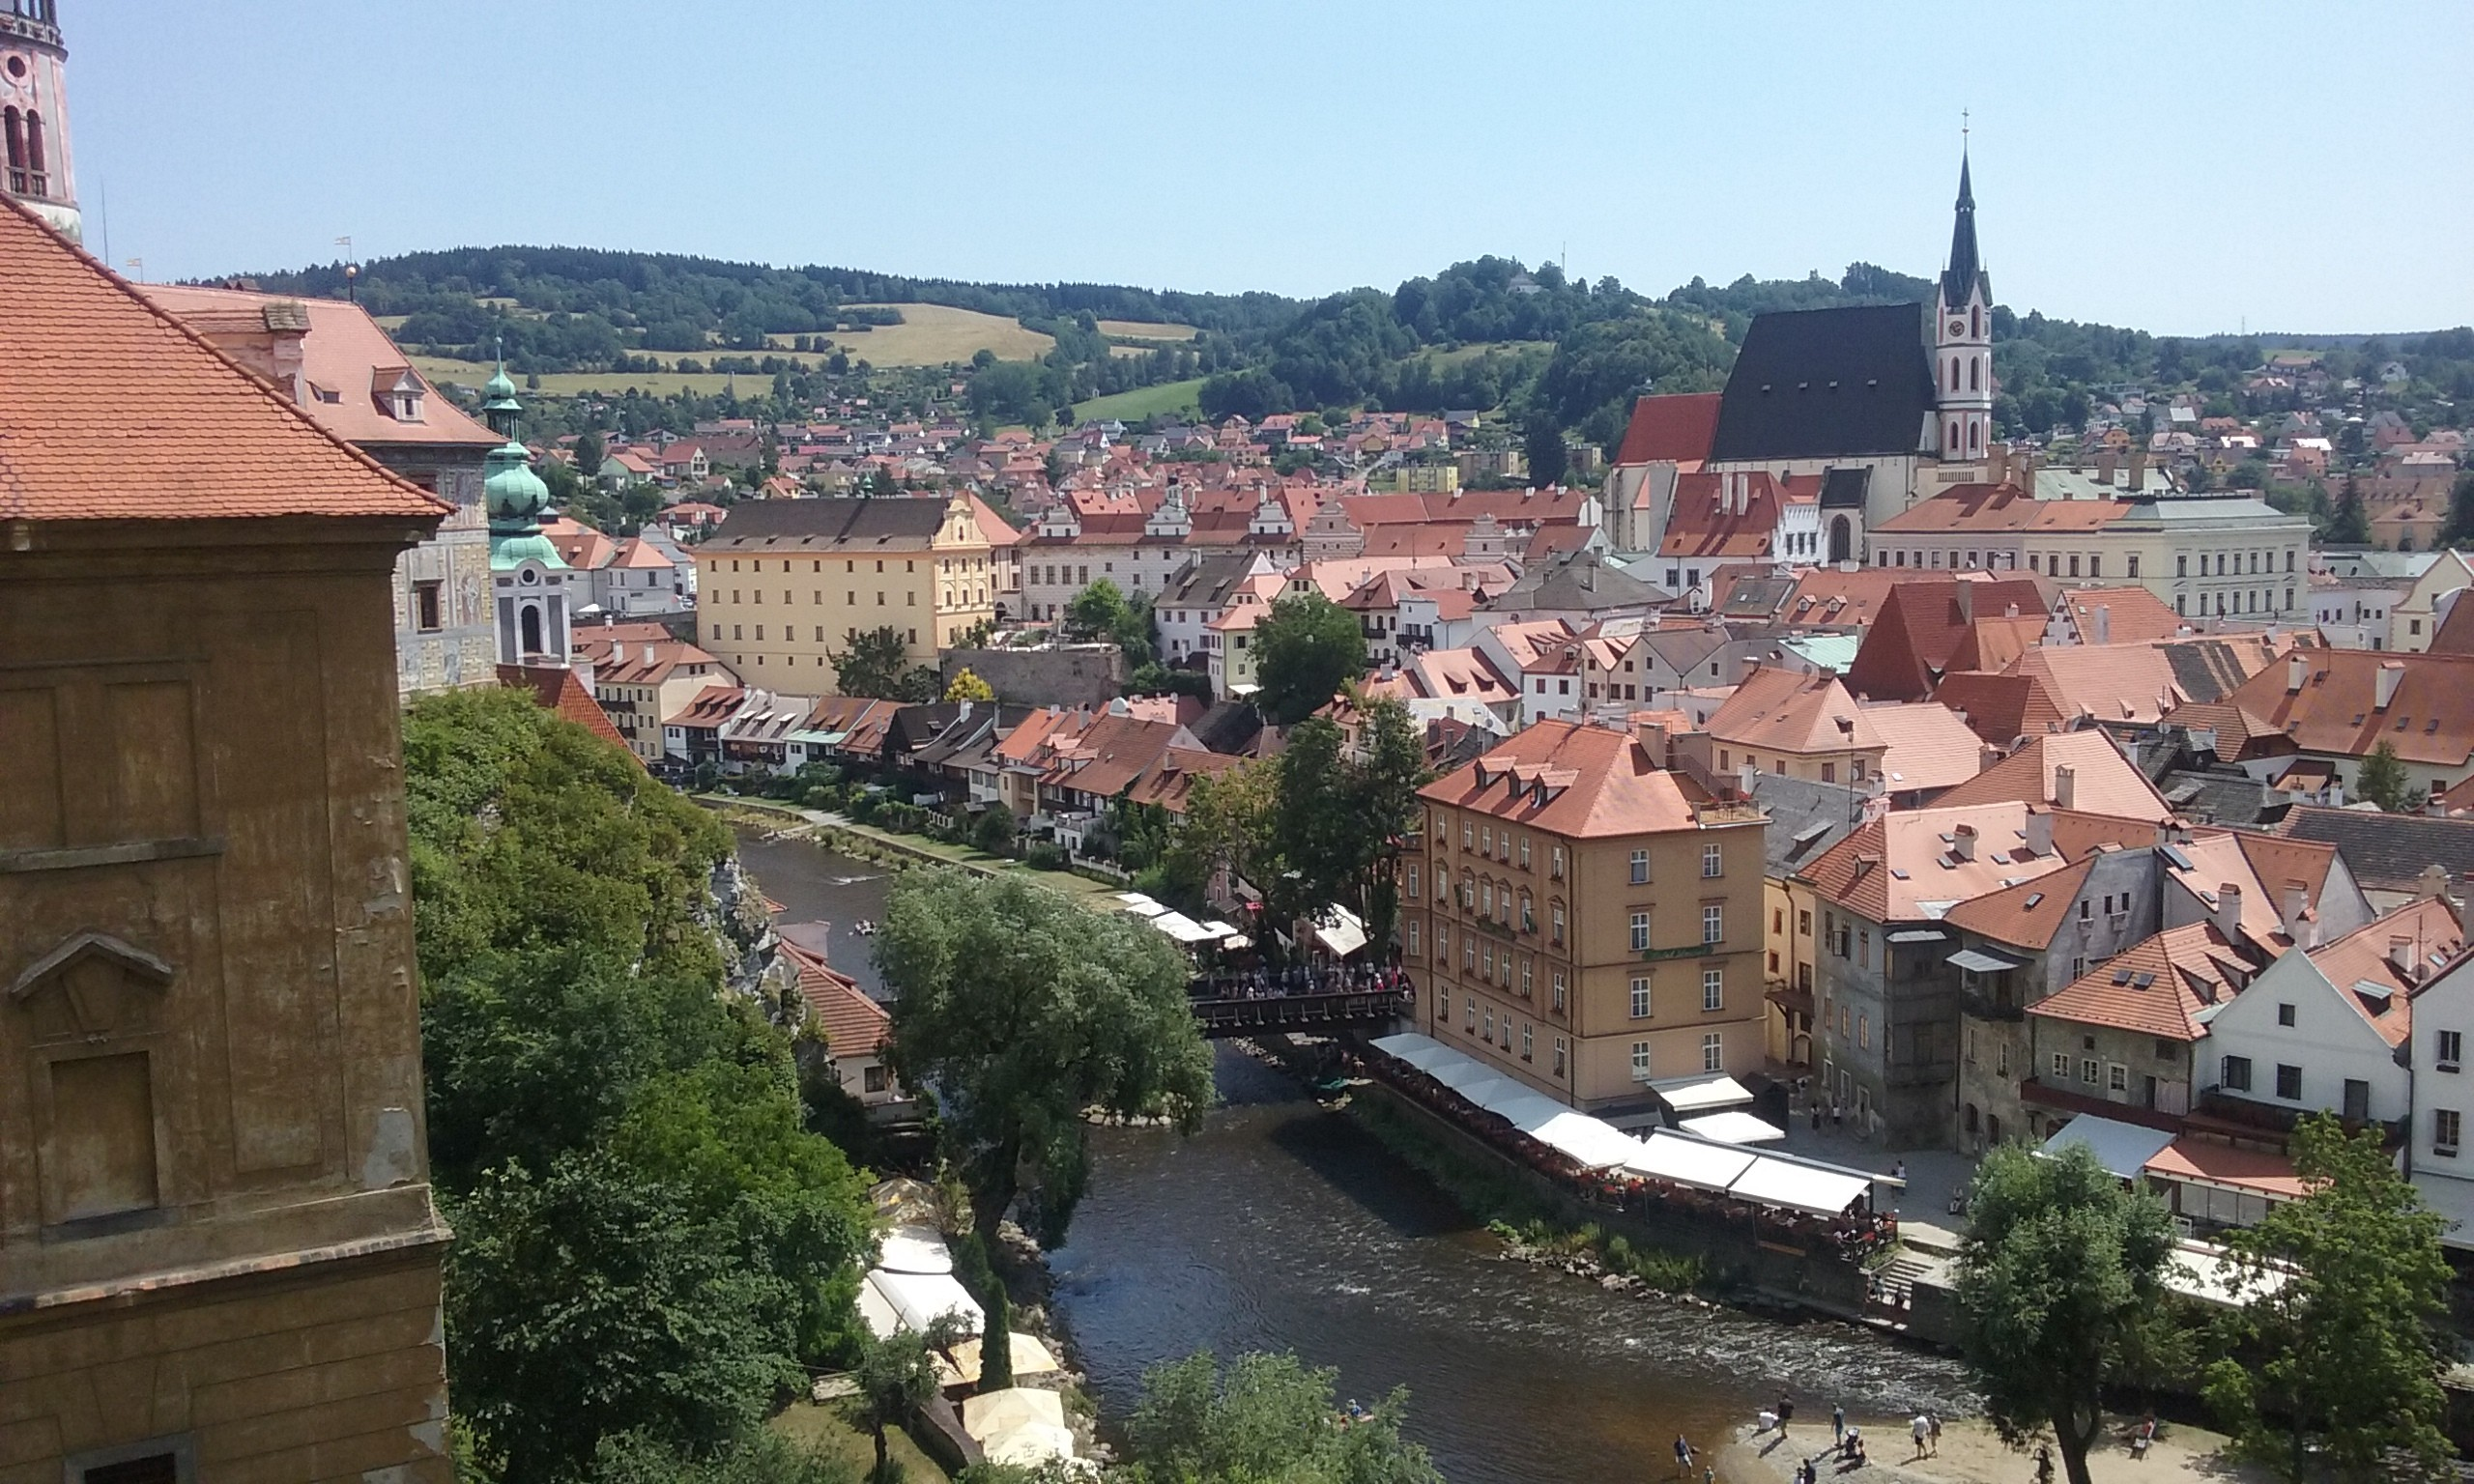 Cesky Krumlov taken by Rose Sampley